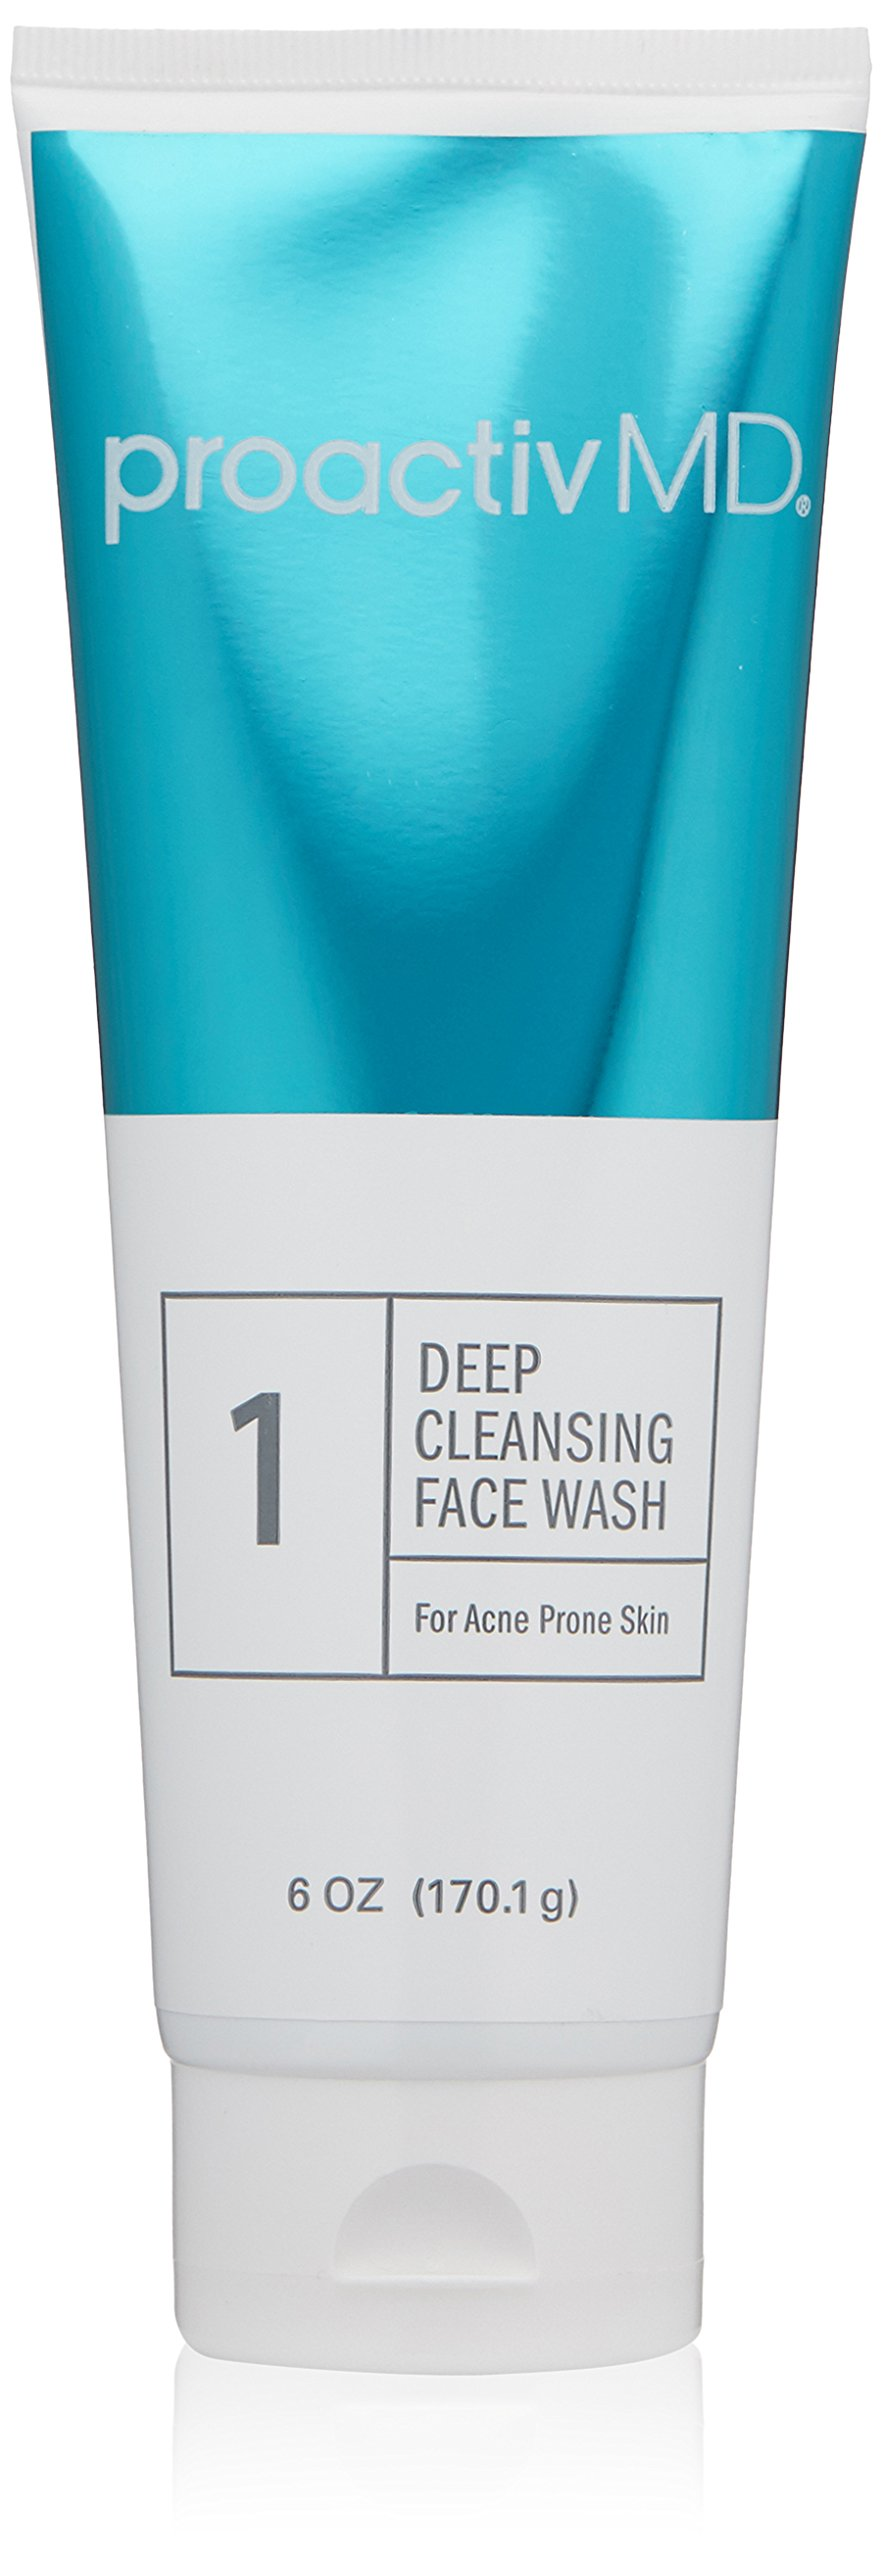 Proactiv Deep Cleansing Face Wash, 6 Oz by Proactiv